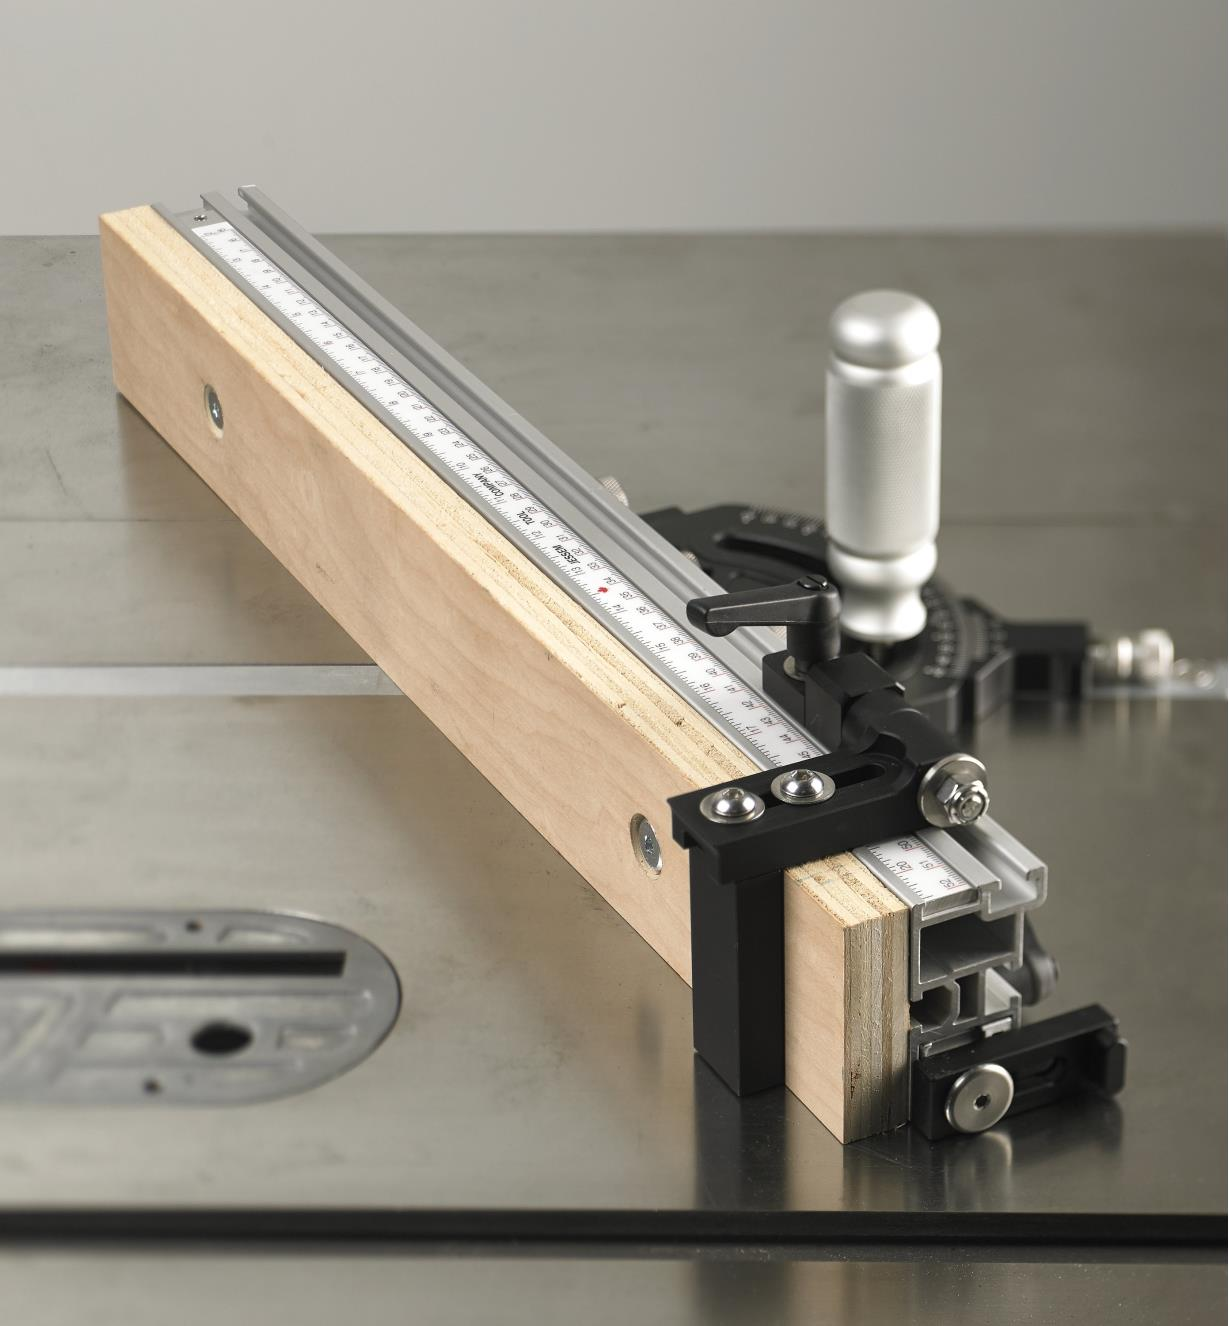 Adjustable flip stop and user-made sacrificial sub-fence mounted on the JessEm Mite-R-Excel II Miter Gauge for repetitive machining